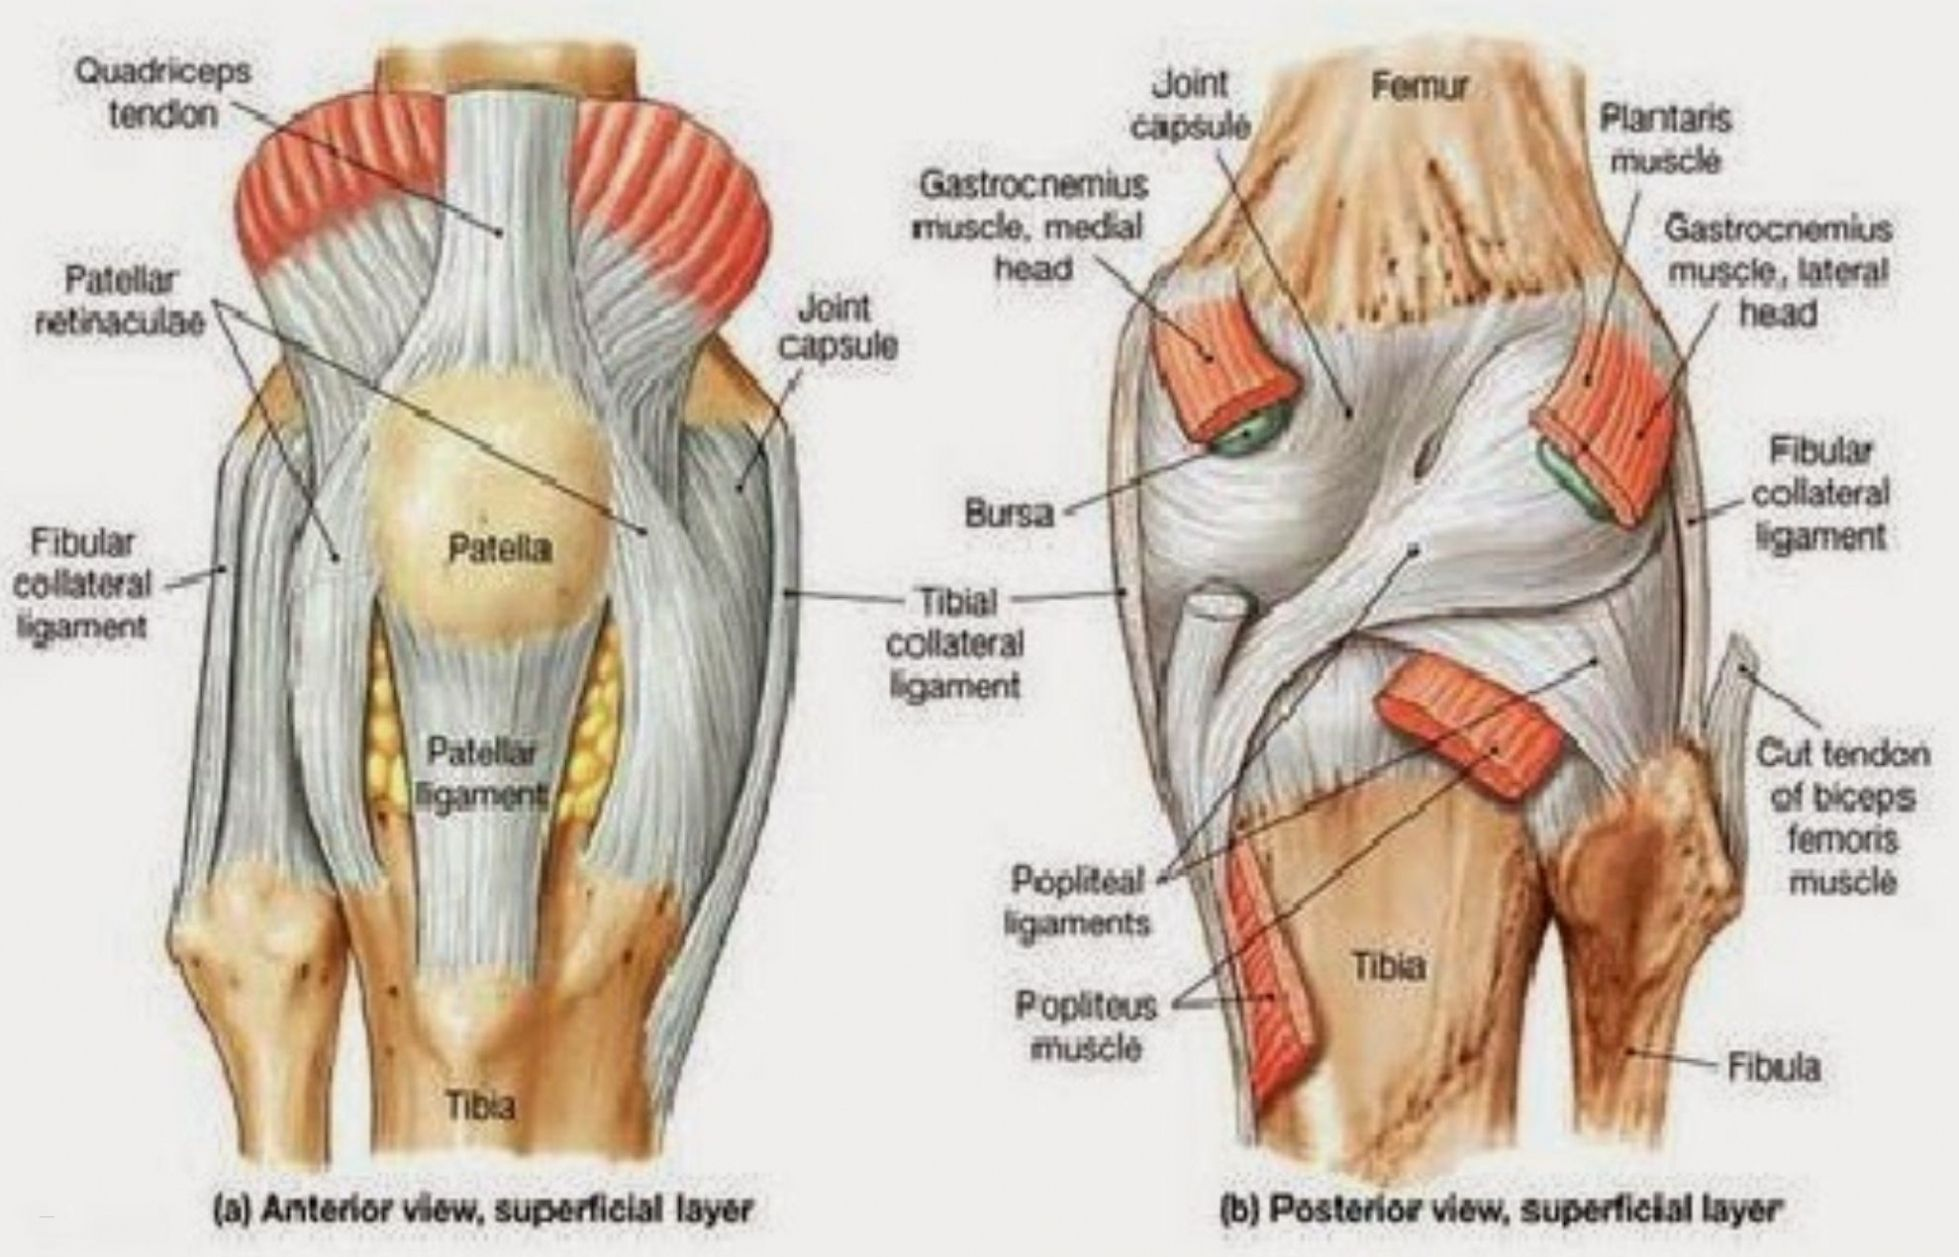 Muscles In The Arm Diagram Human Body Anatomy Human Knee